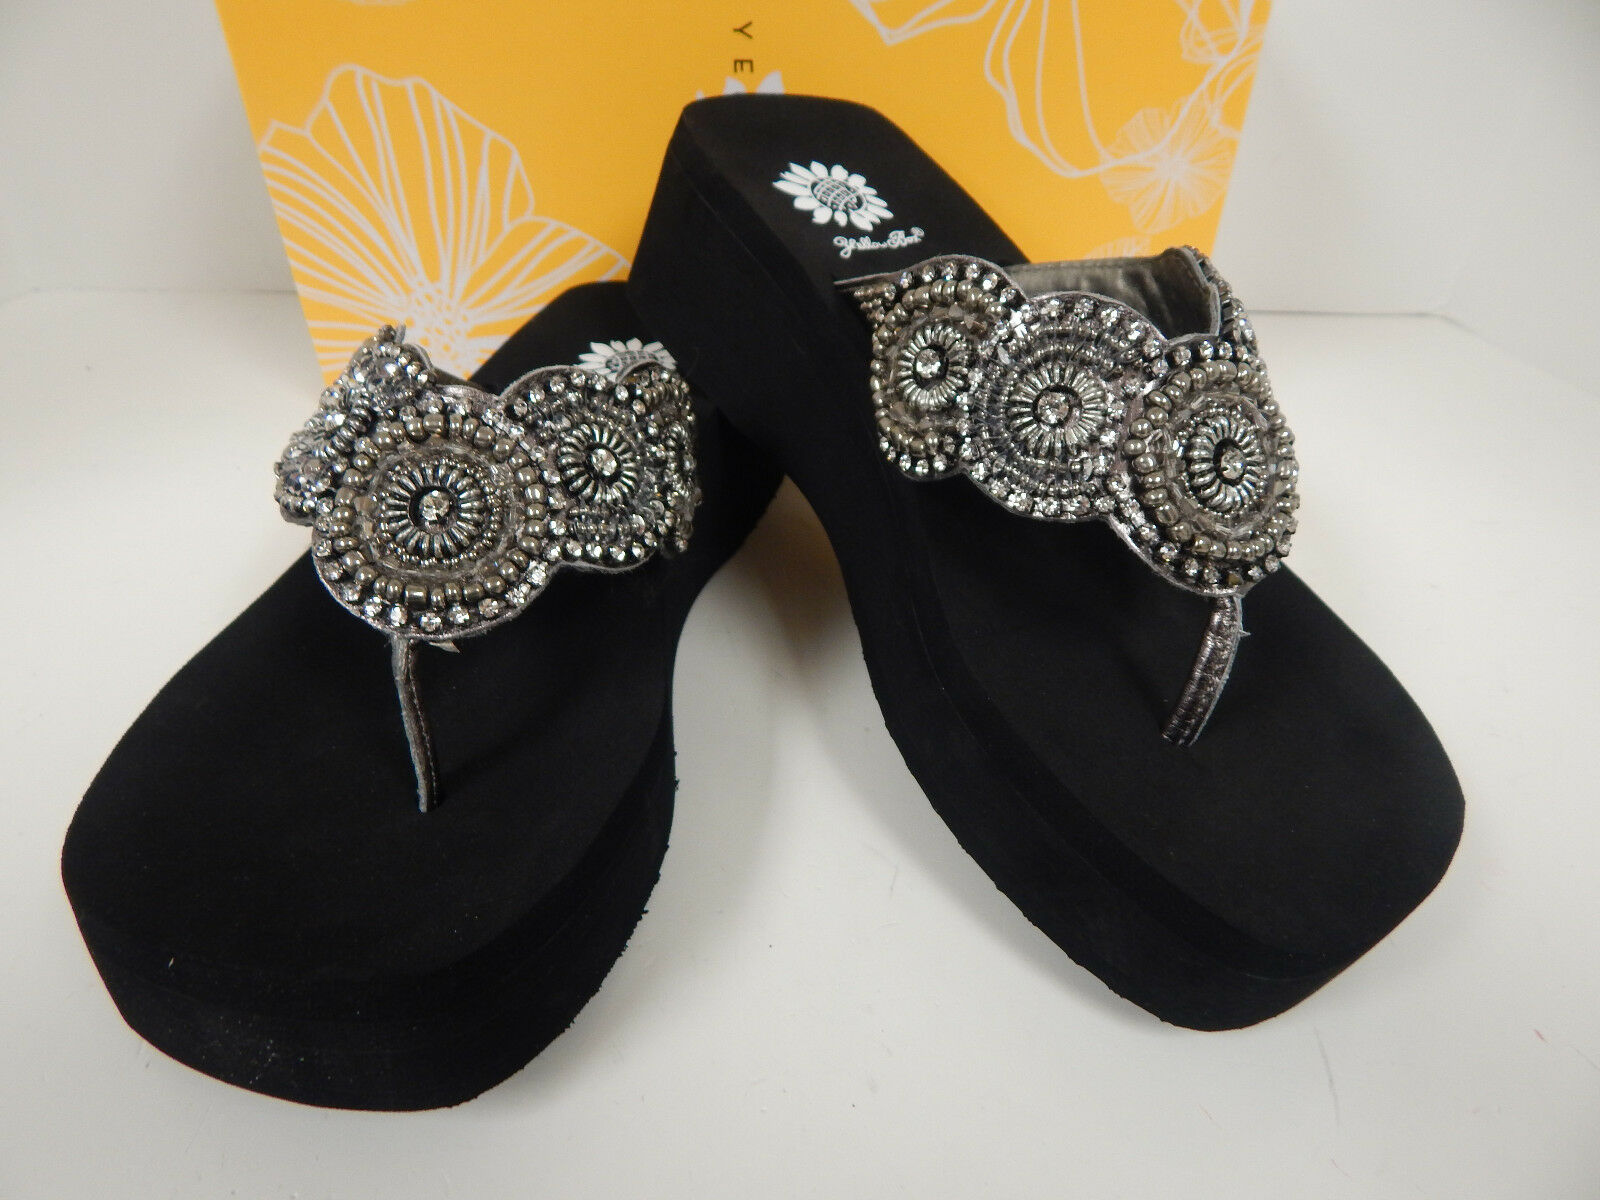 Yellow Box Vidania 24897 Pewter Lea Upper W  Ornate Design Flip Flops